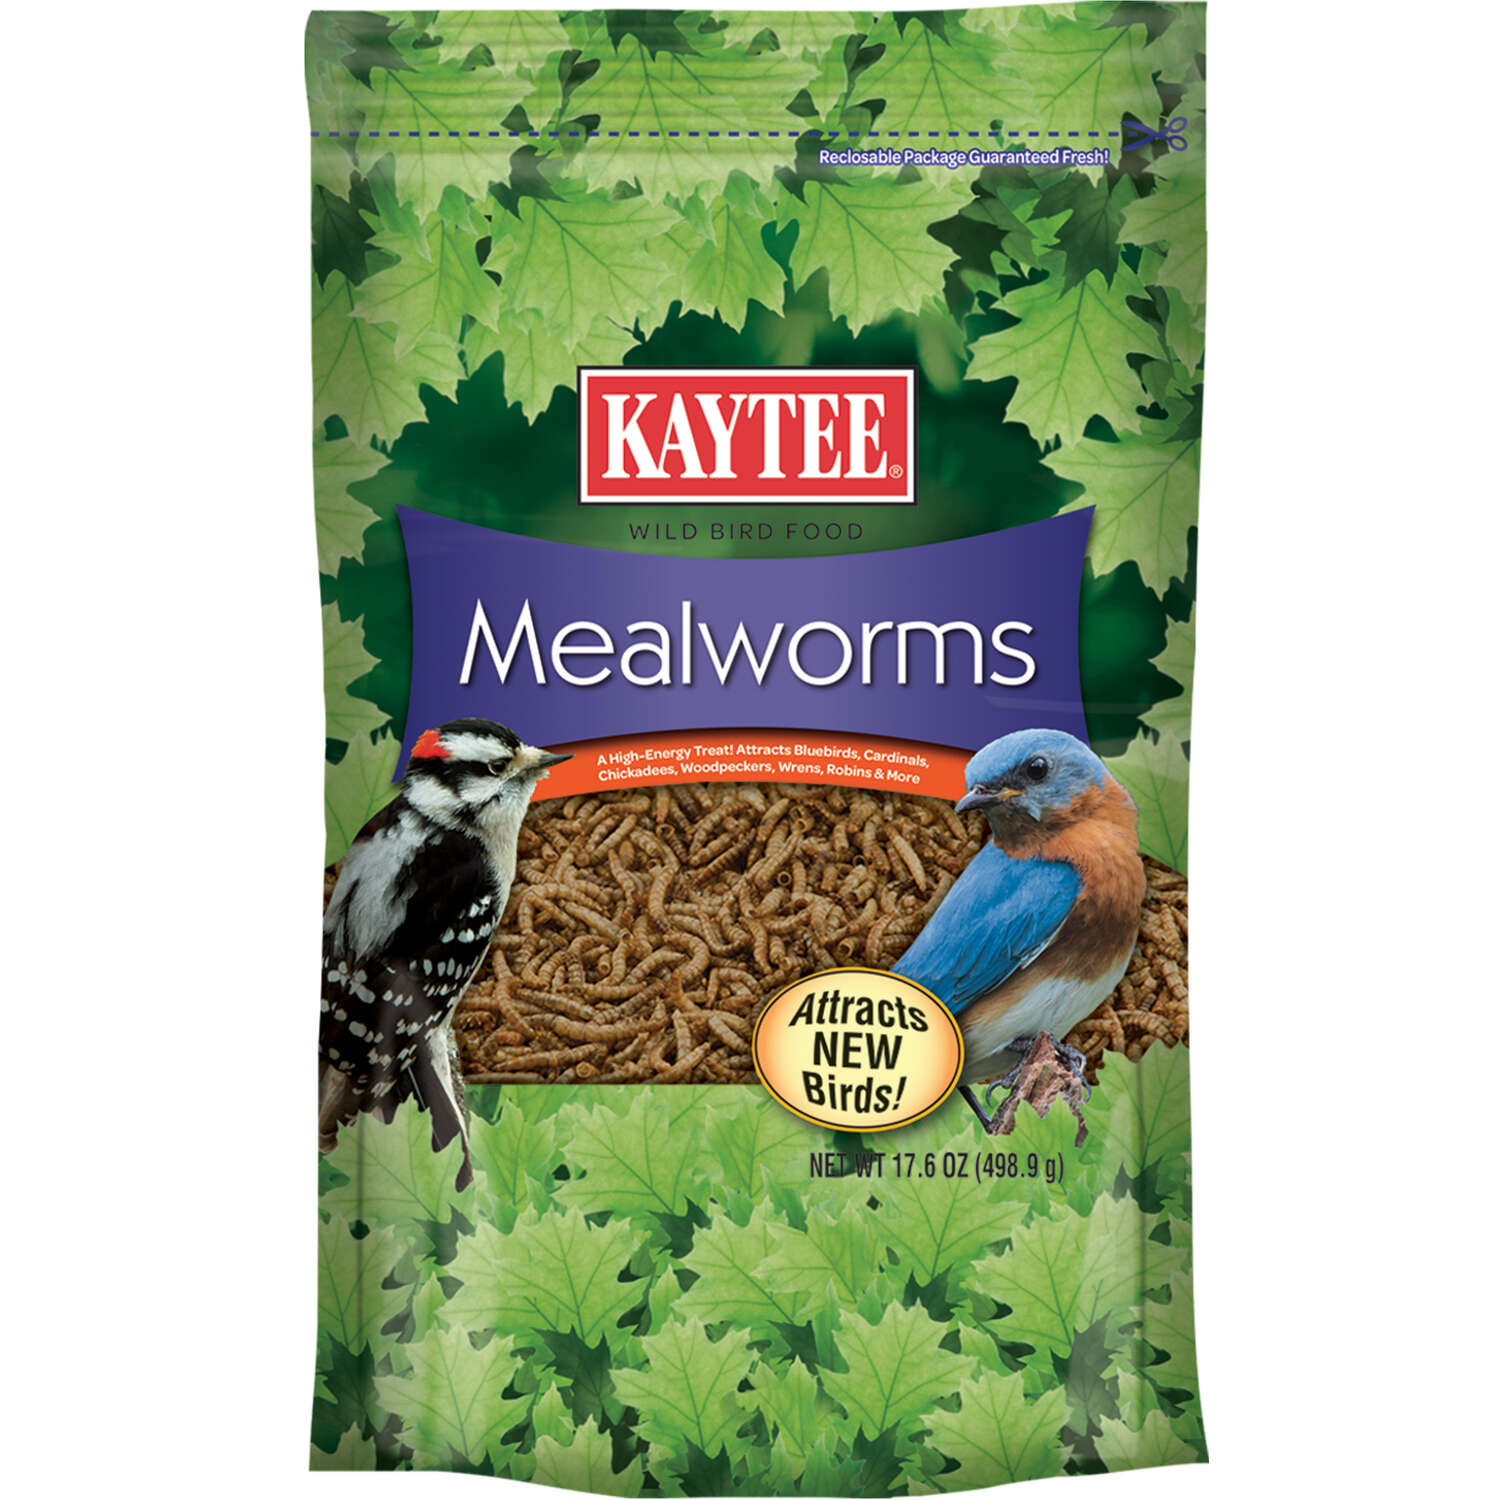 Kaytee Mealworms Songbird Dried Mealworm Mealworms 17.6 oz.